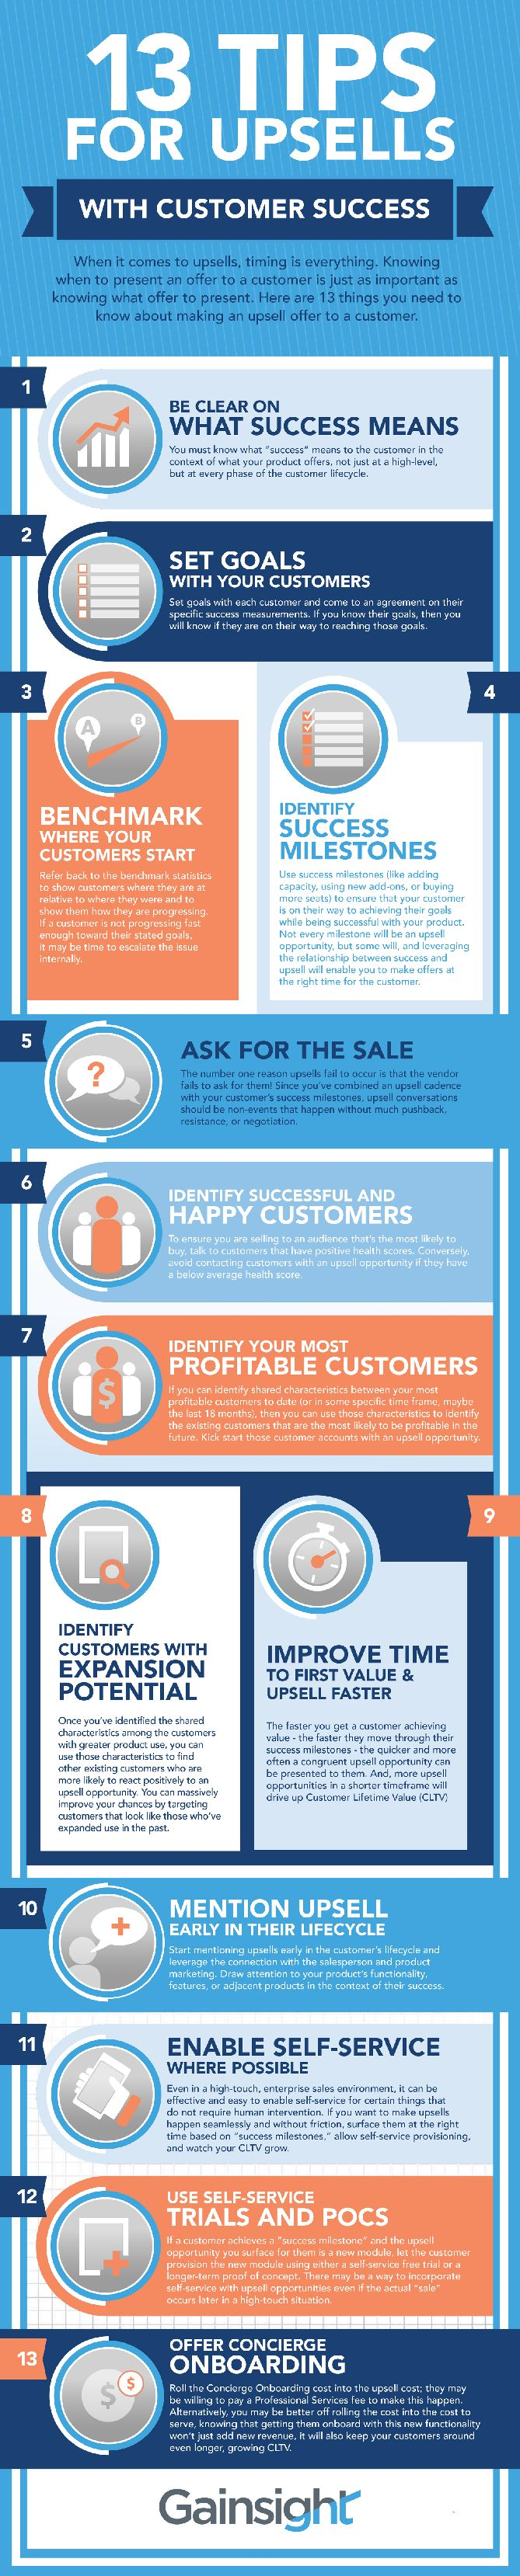 13 tips on how to upsell your customers, from identifying and monitoring success milestones to rolling out client self-service.